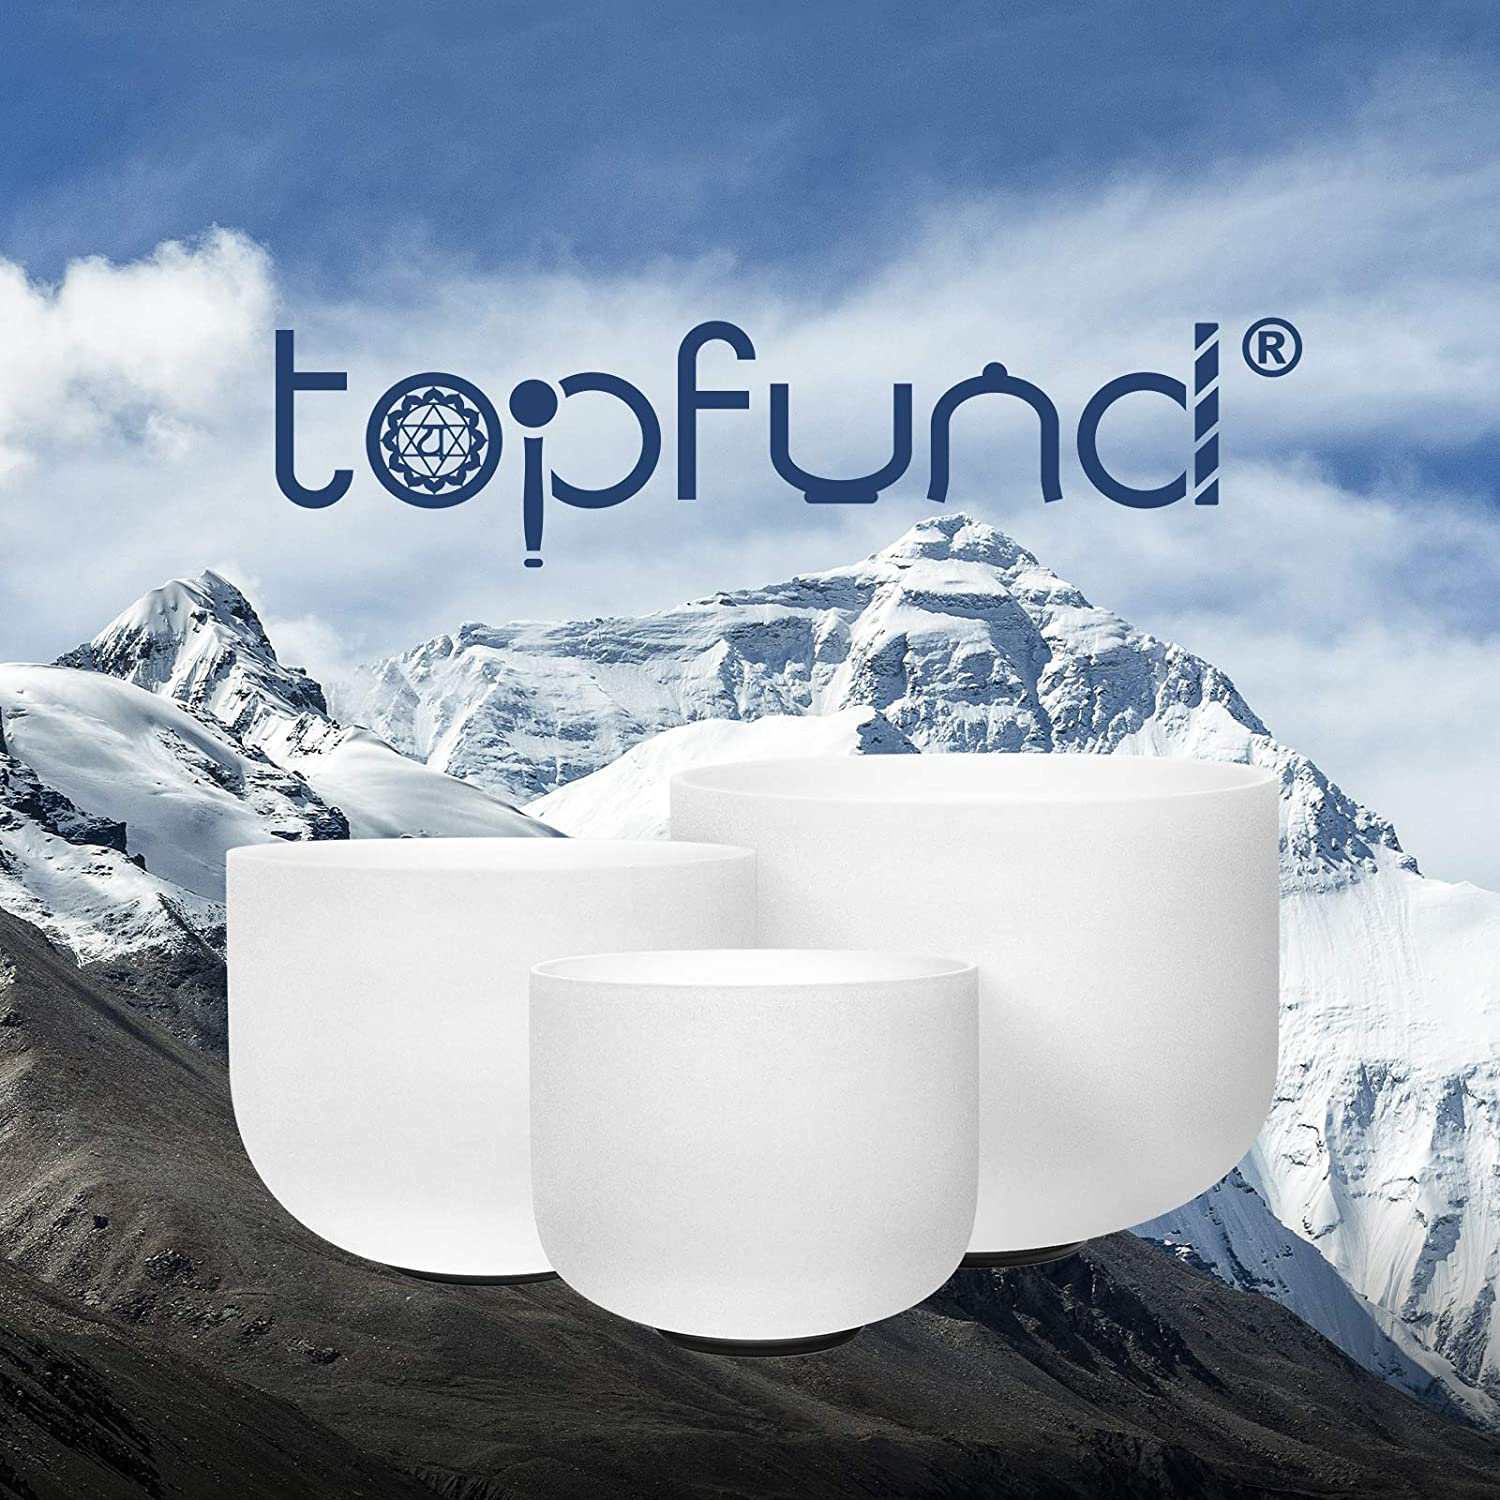 TOPFUND 432 hz Chakra Tuned Set of 7 Crystal Singing Bowls 8-14 inch with Heavy Duty Crystal Singing Bowls Cases and Crystal Singing Bowl Mallets and O-rings